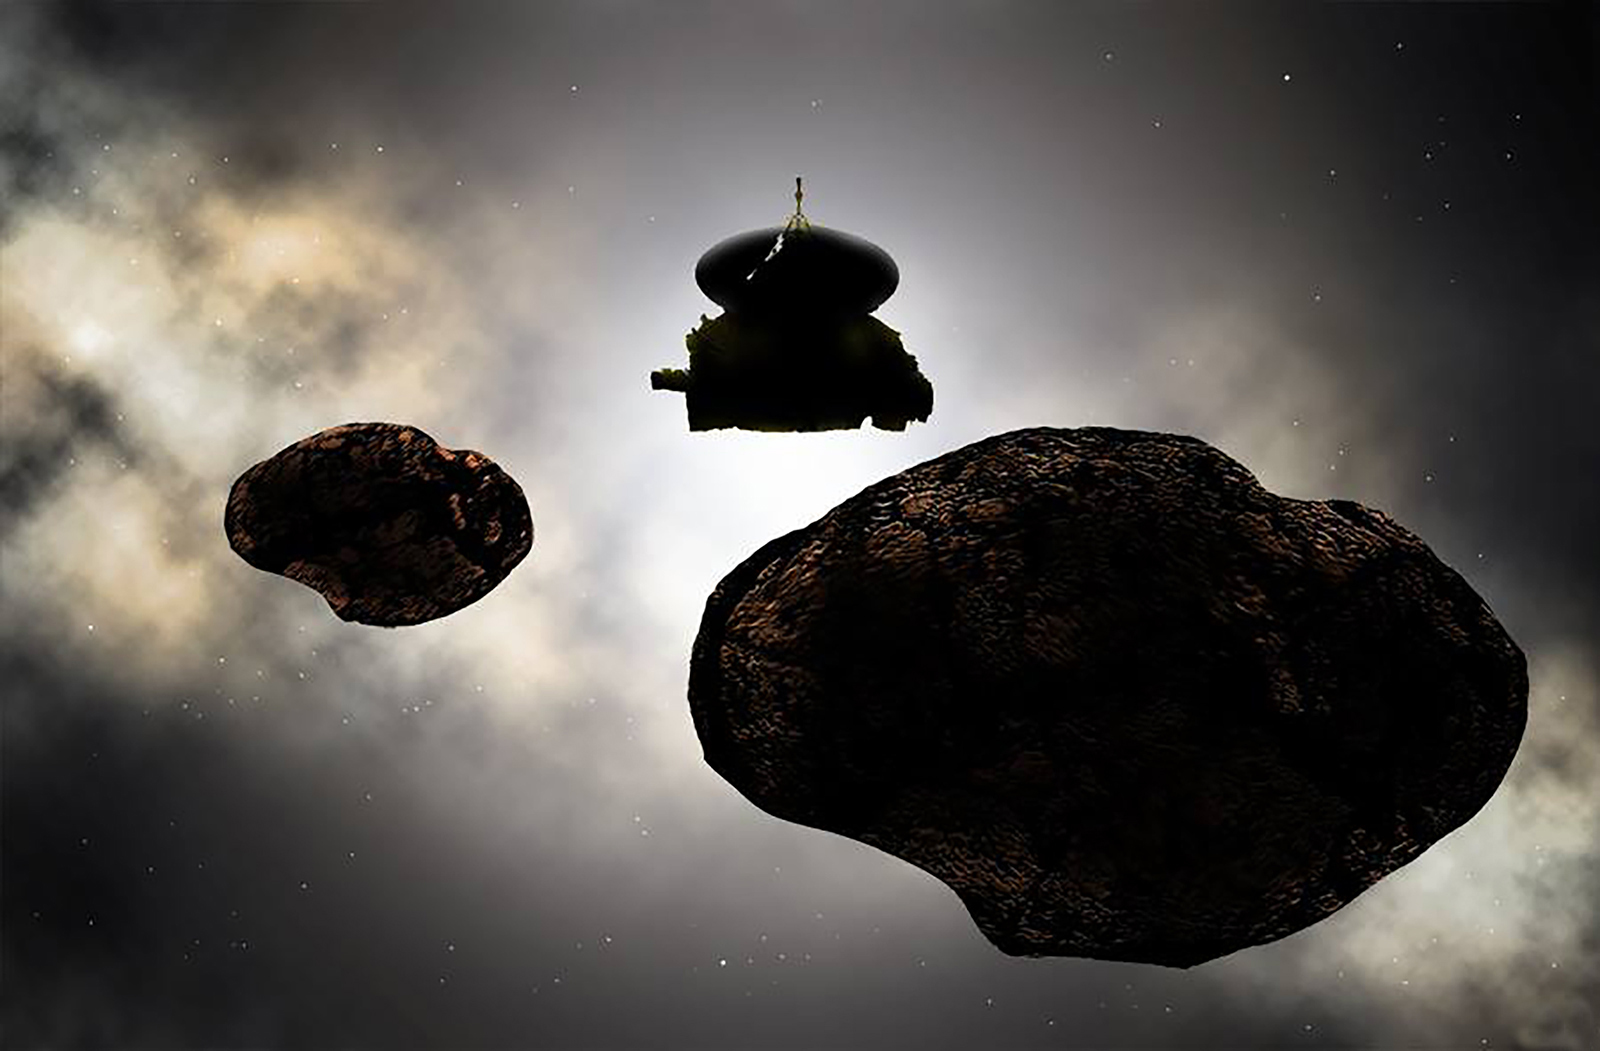 rocky objects and spacecraft in space